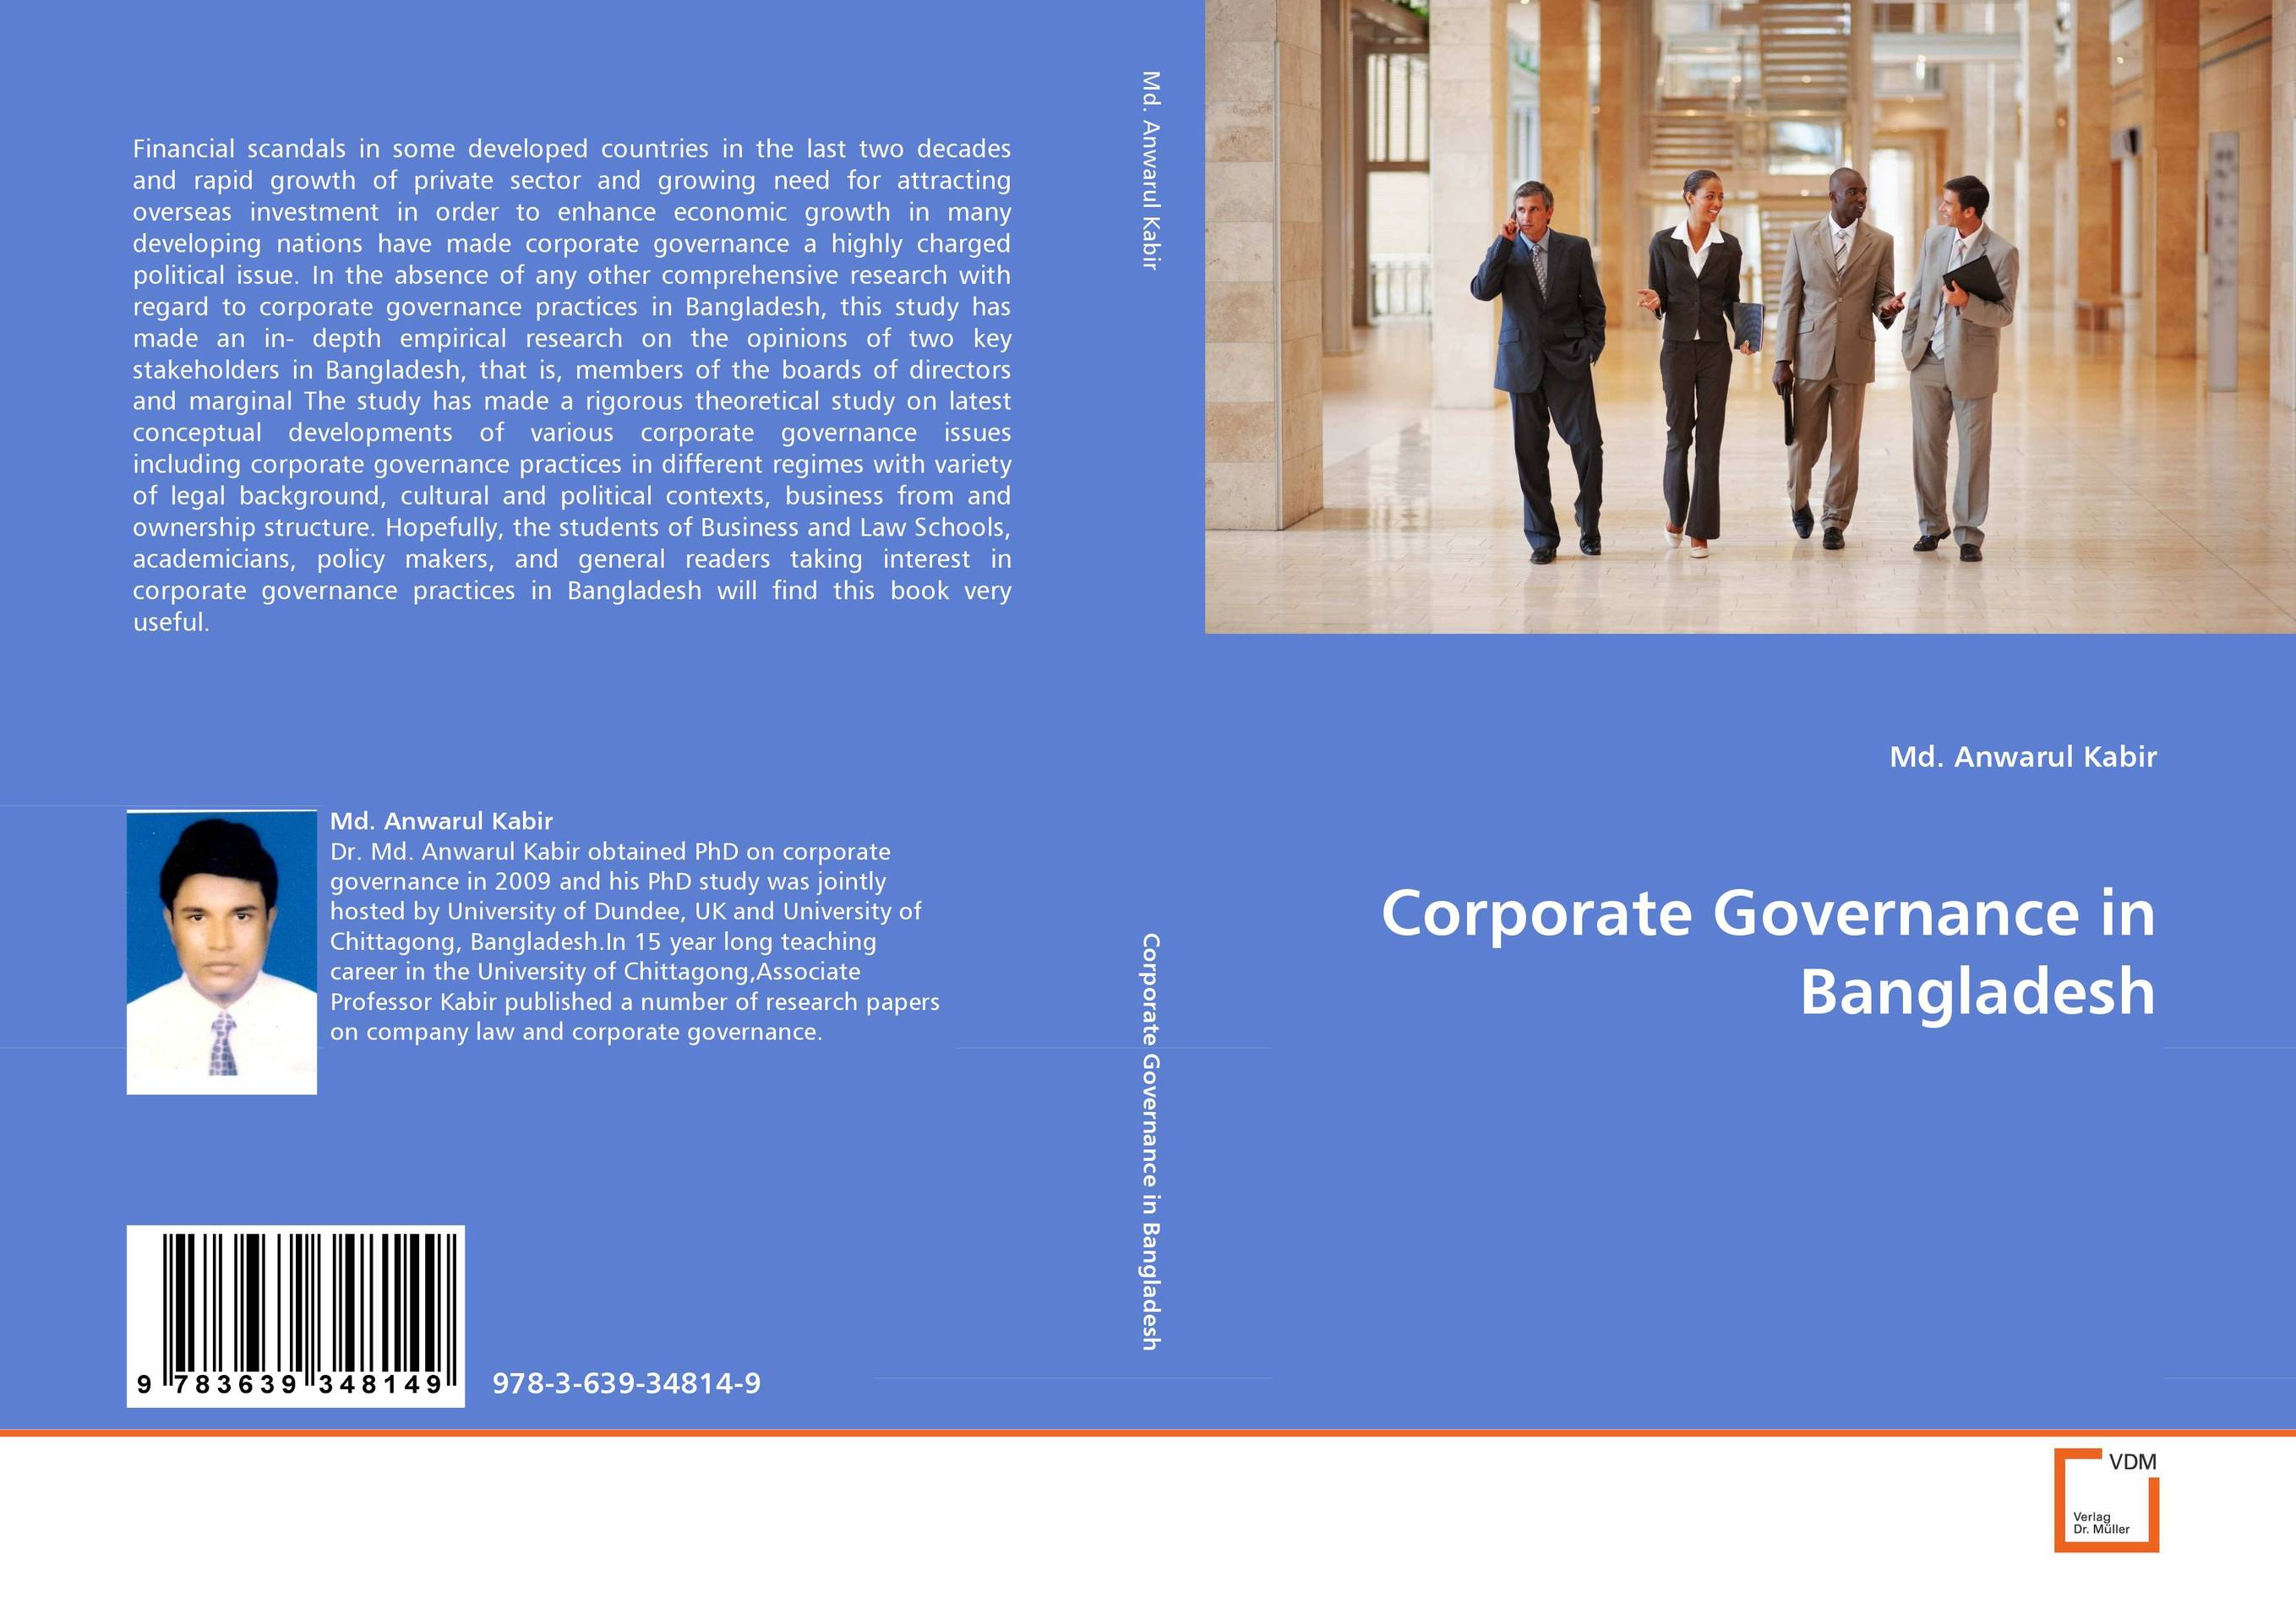 Corporate Governance in Bangladesh corporate governance in nigerian banks